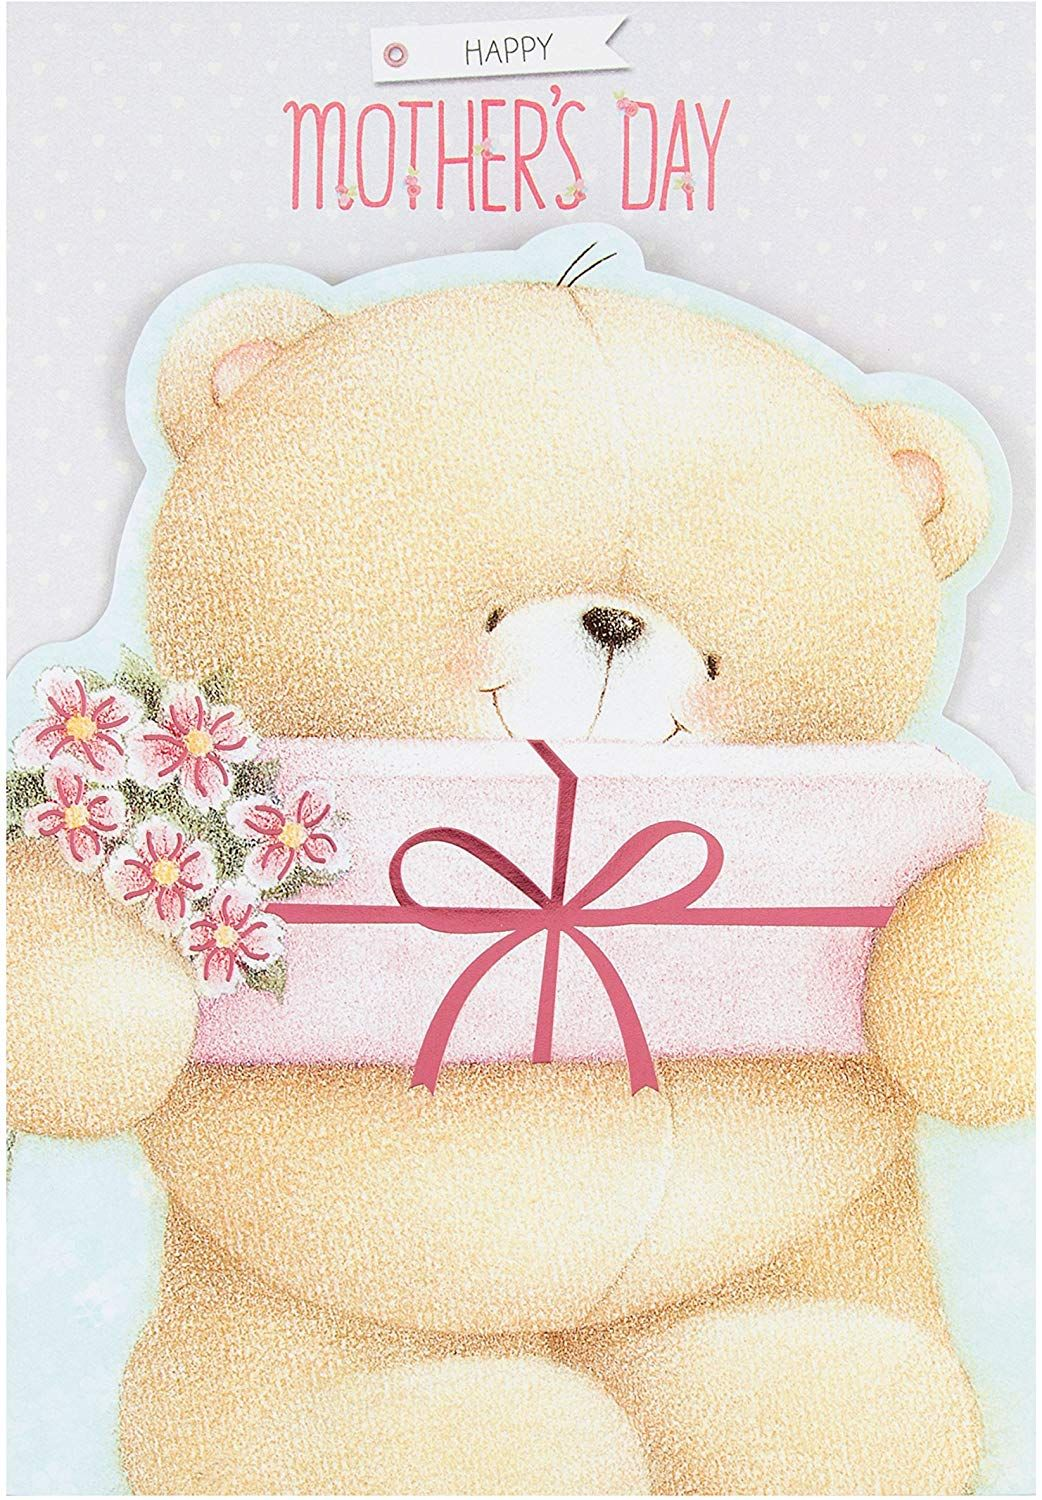 Hallmark forever friends mothers day card for her love